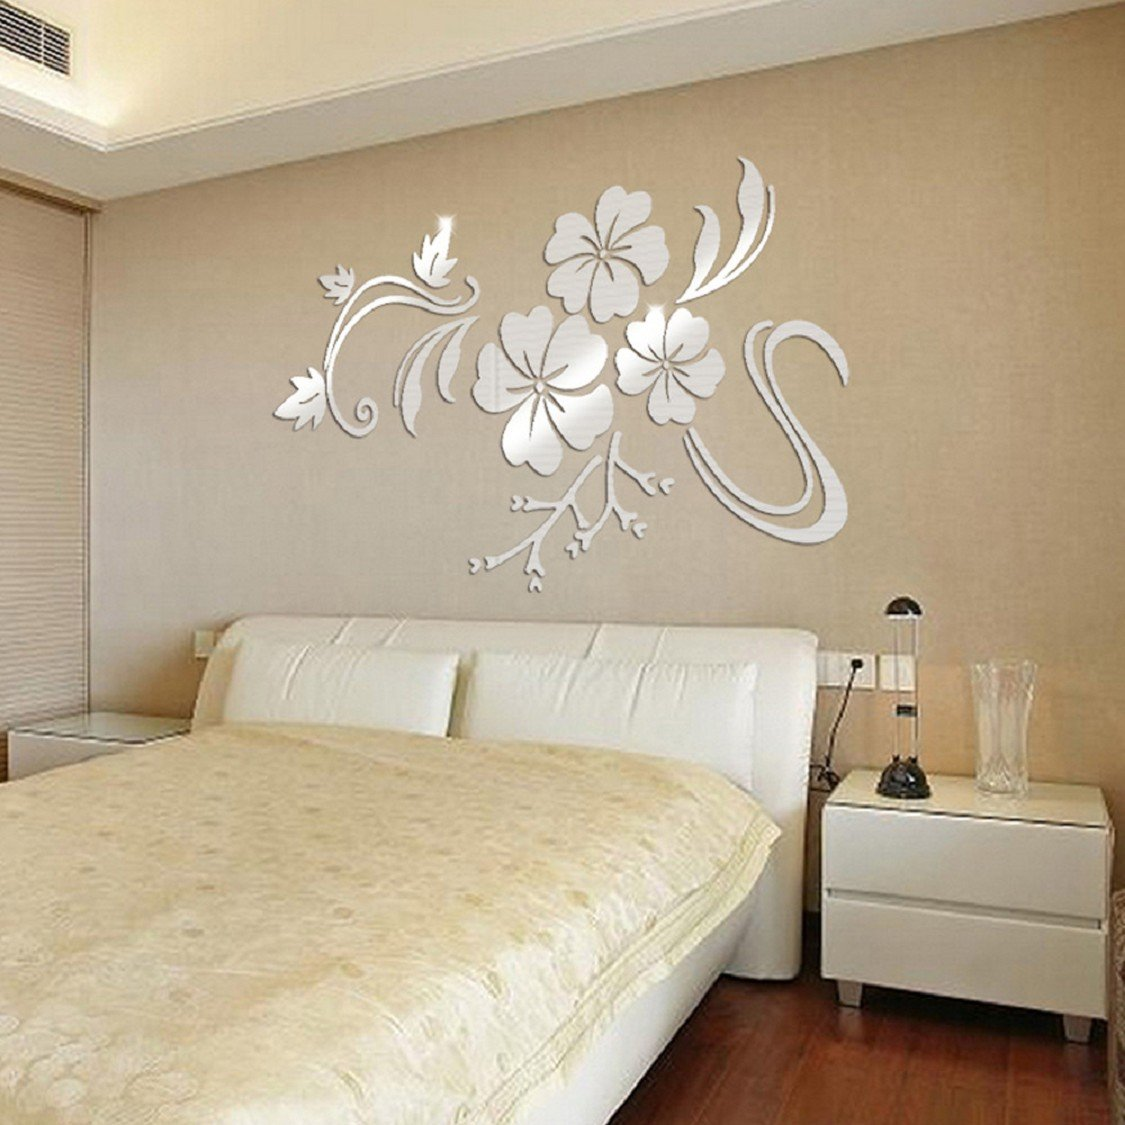 Awesome Ikevan 1Set Acrylic Art 3D Mirror Flower Wall Stickers DIY Home Wall Room  Decals Decor Sofa TV Setting Wall Removable Wall Stickers 78X60cm (Sliver)  ...